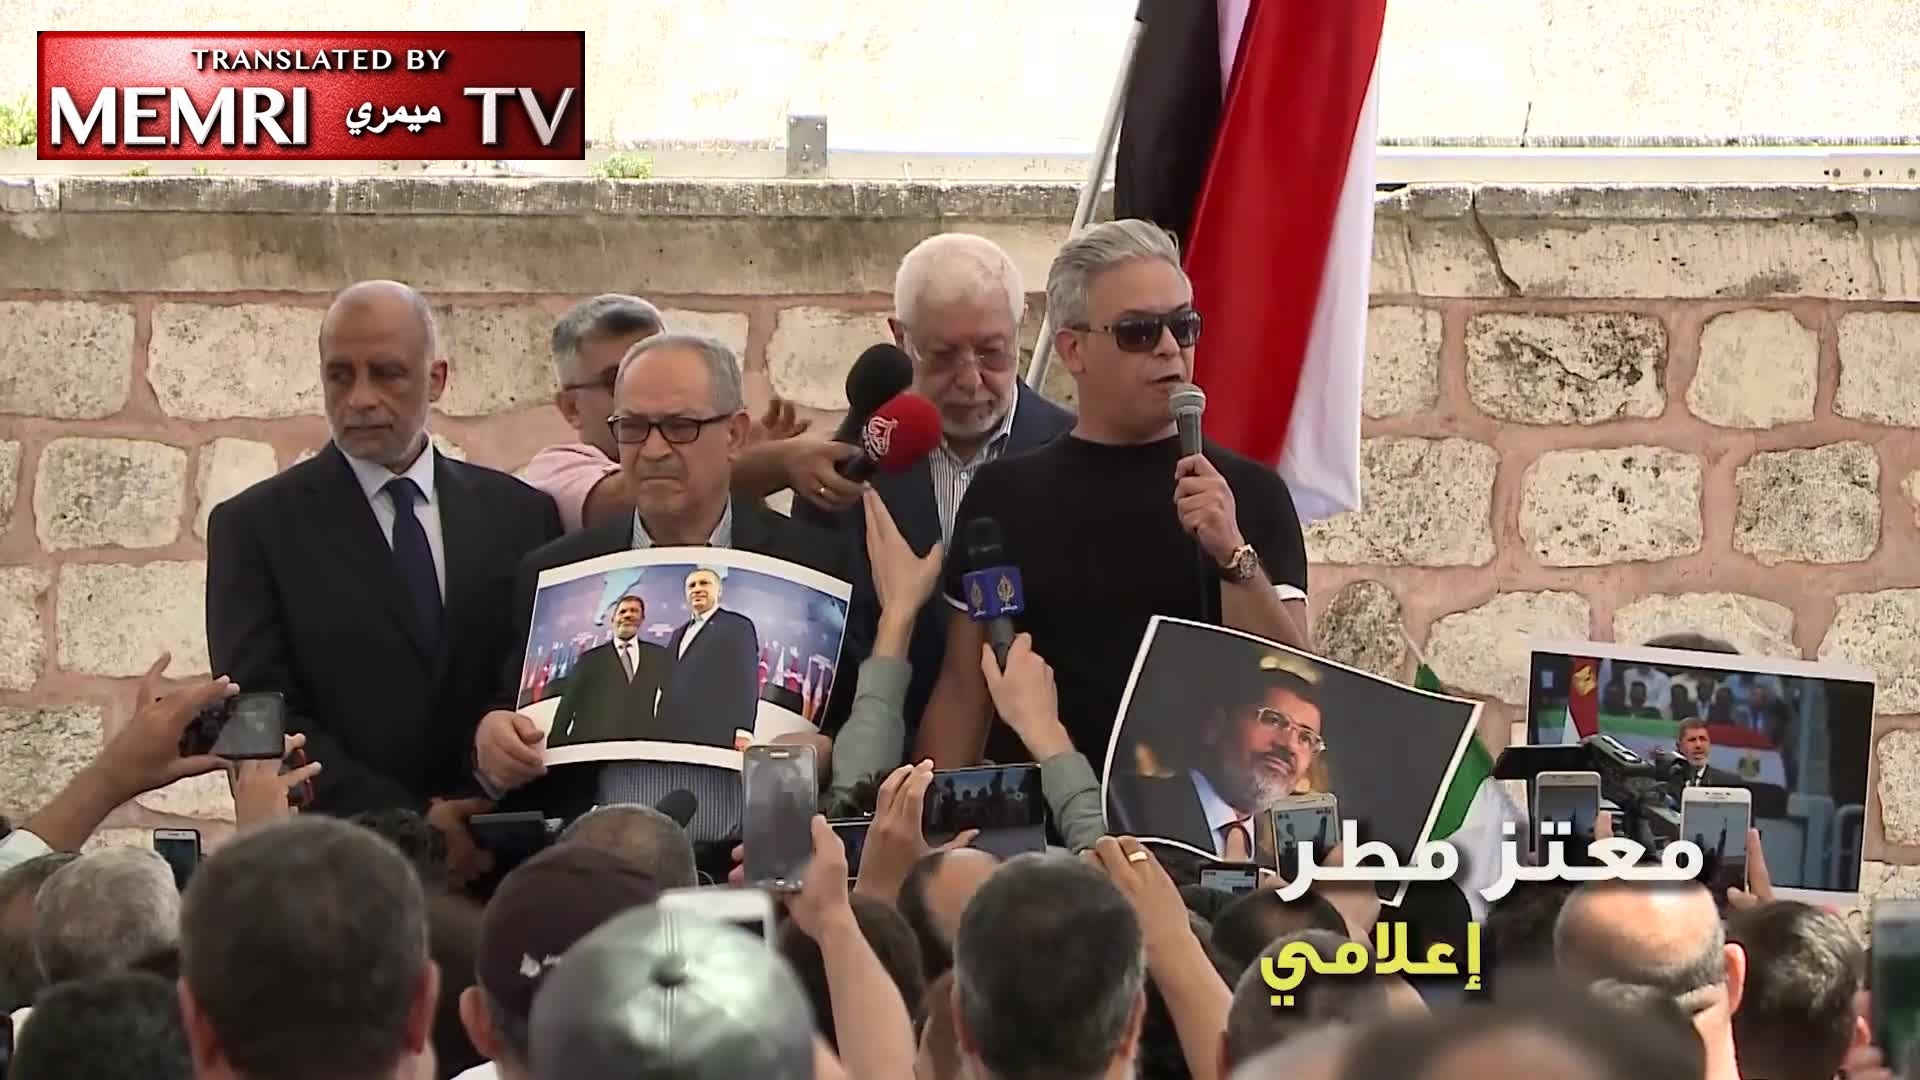 MB TV Host Moataz Matar at Turkey Rally: Morsi's Fingerprint Has Been on Every Missile Launched by the Gaza Resistance